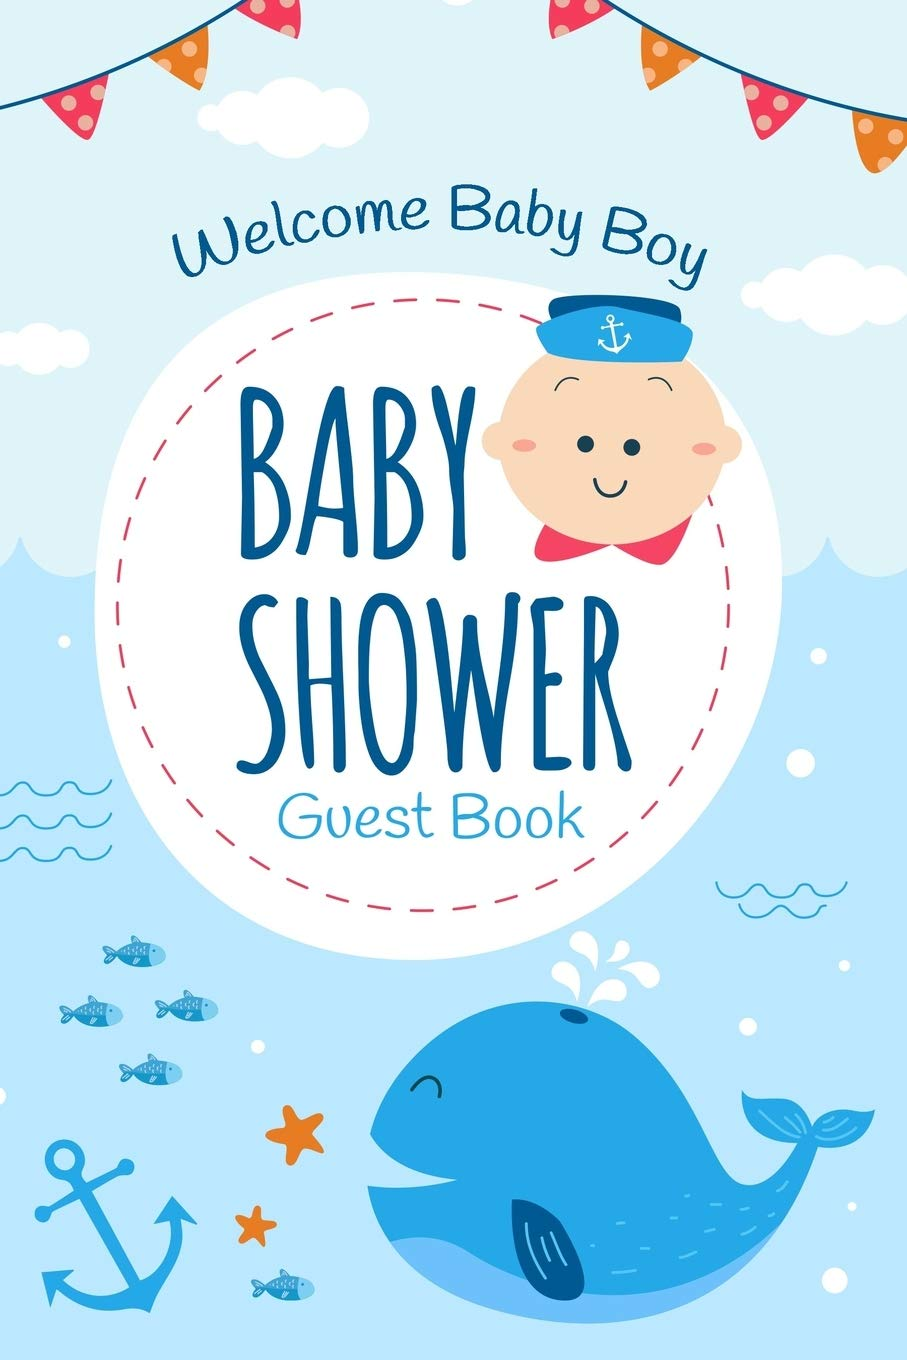 Baby Shower Advice Book Whale Baby Shower Baby Boy Shower Whale Baby Shower Guest Book Teal Whale Baby Shower Guest Book